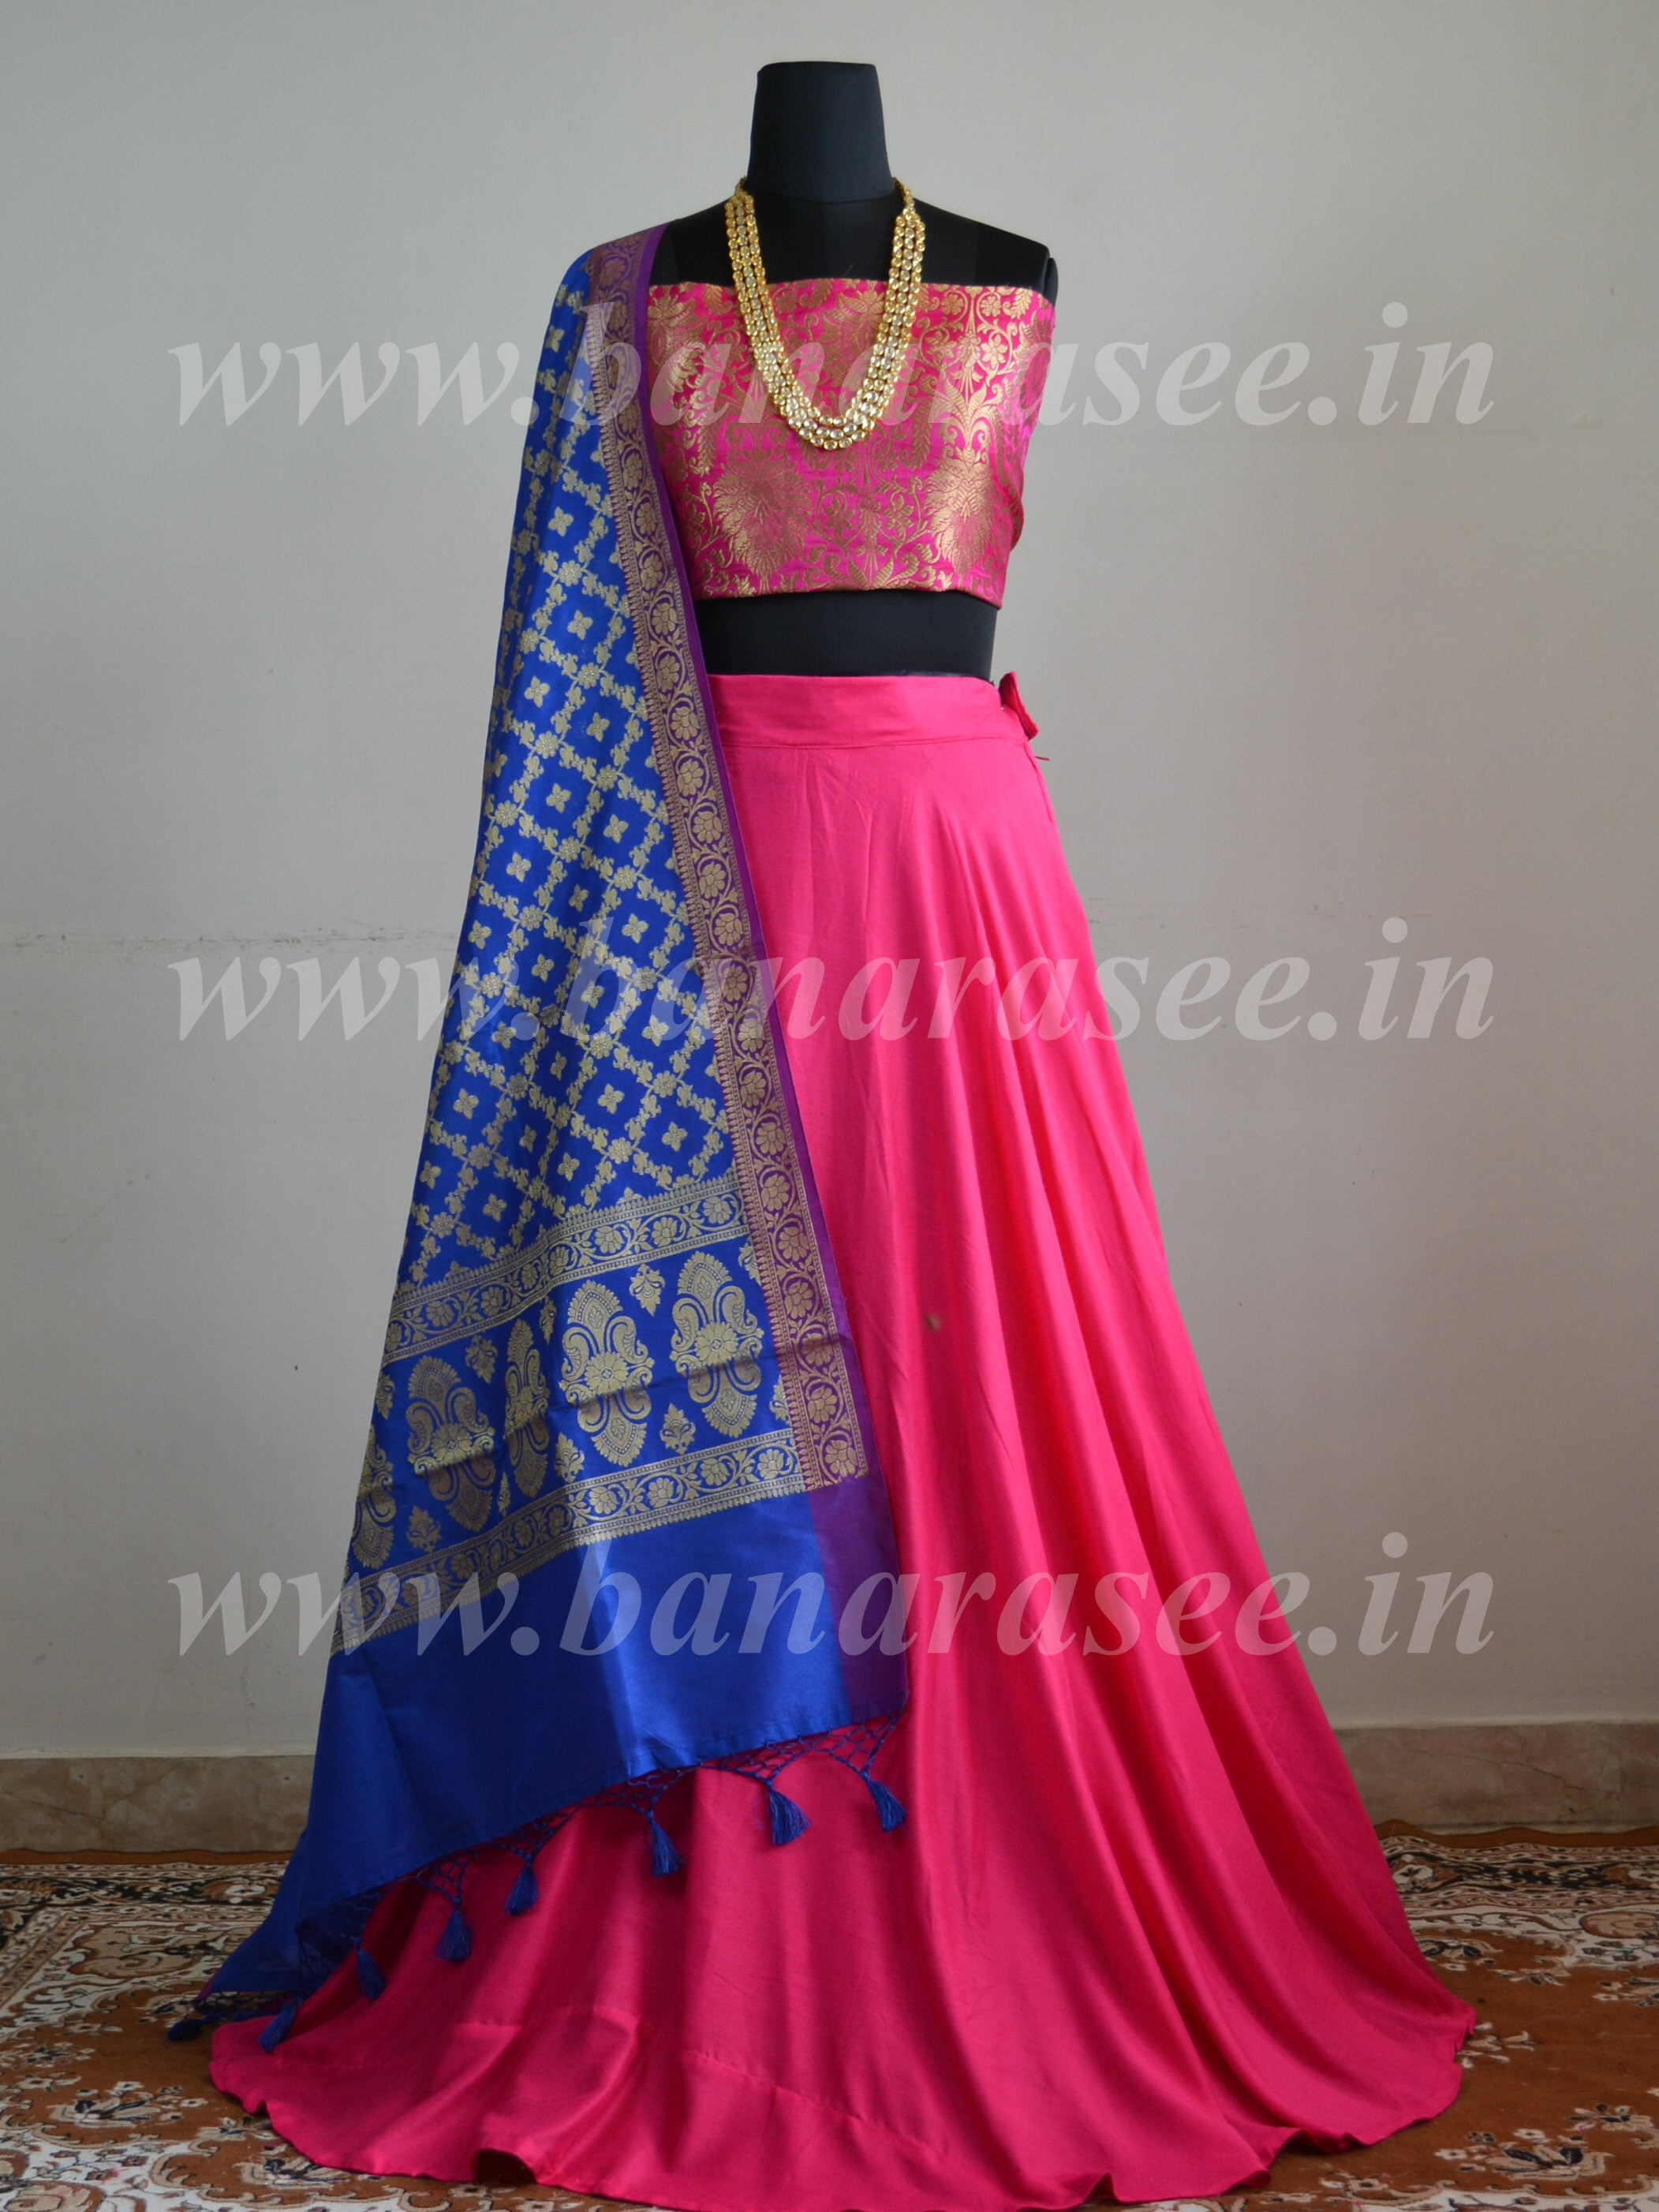 Banarasee Stitched Umbrella Lehenga & Blouse Fabric With Blue Art Silk Dupatta-Hot Pink